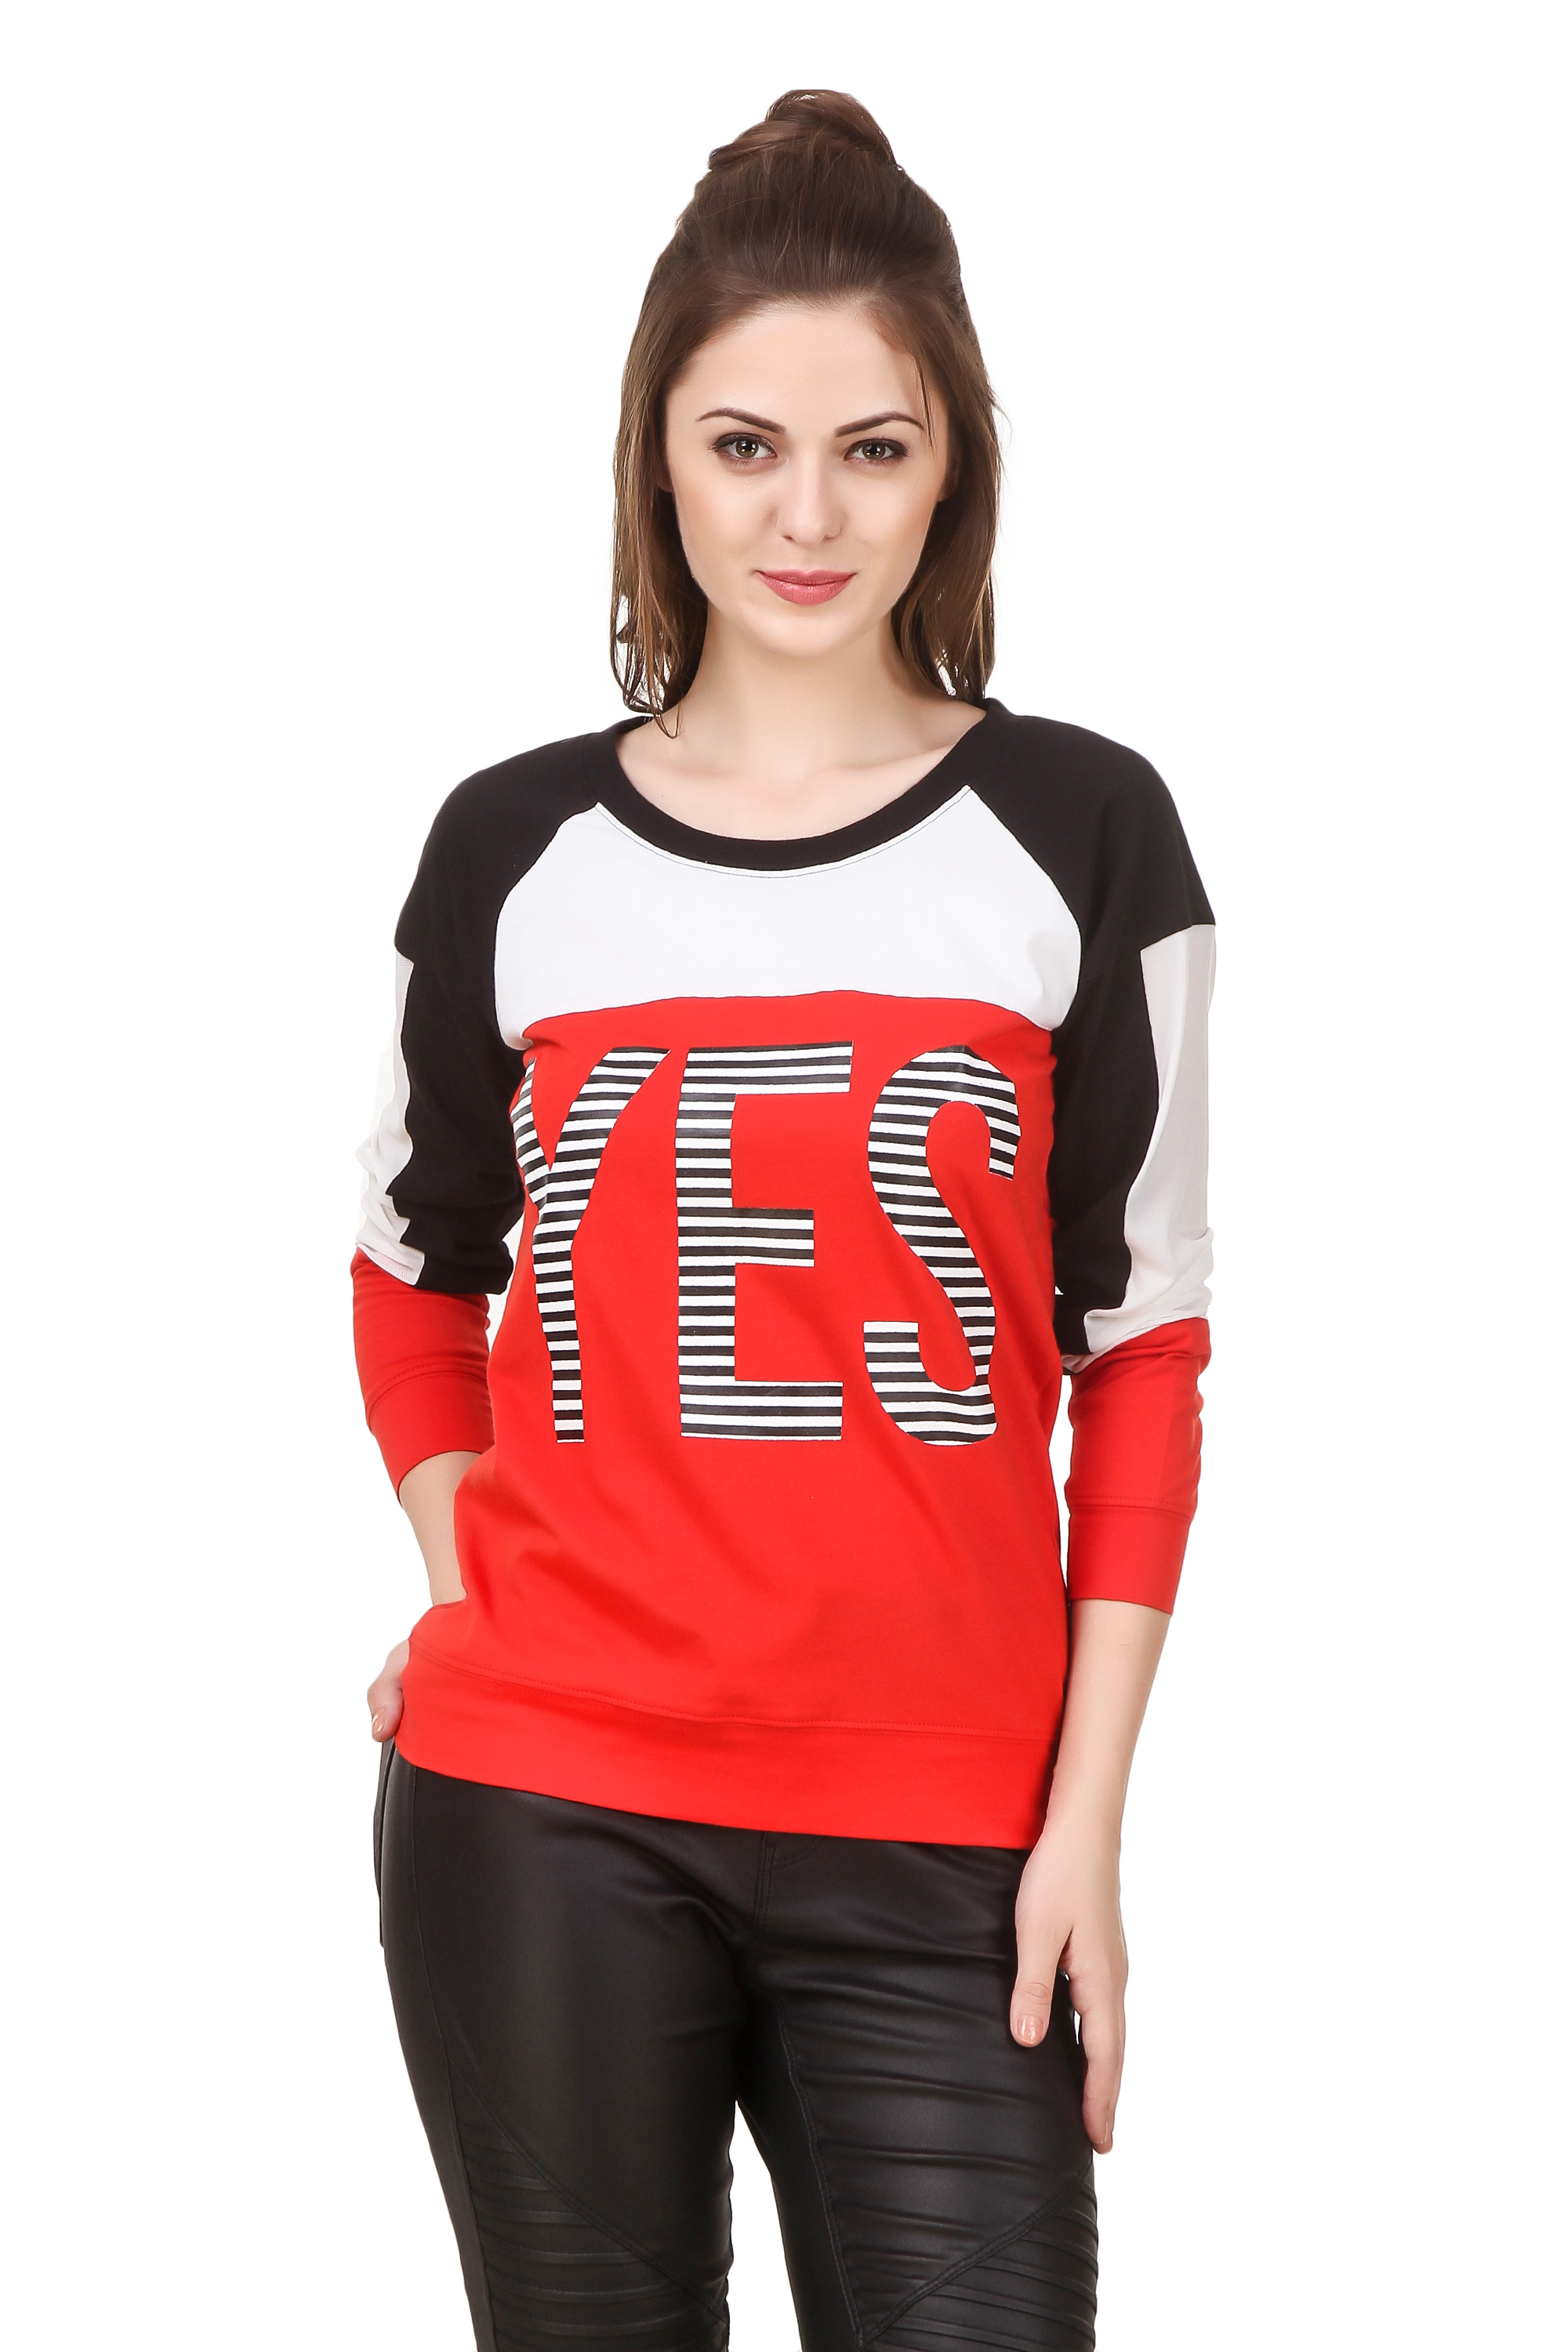 747a307a79aa1 Texco Women s Graffity Slogan Printed Red Color Block Sporty Top